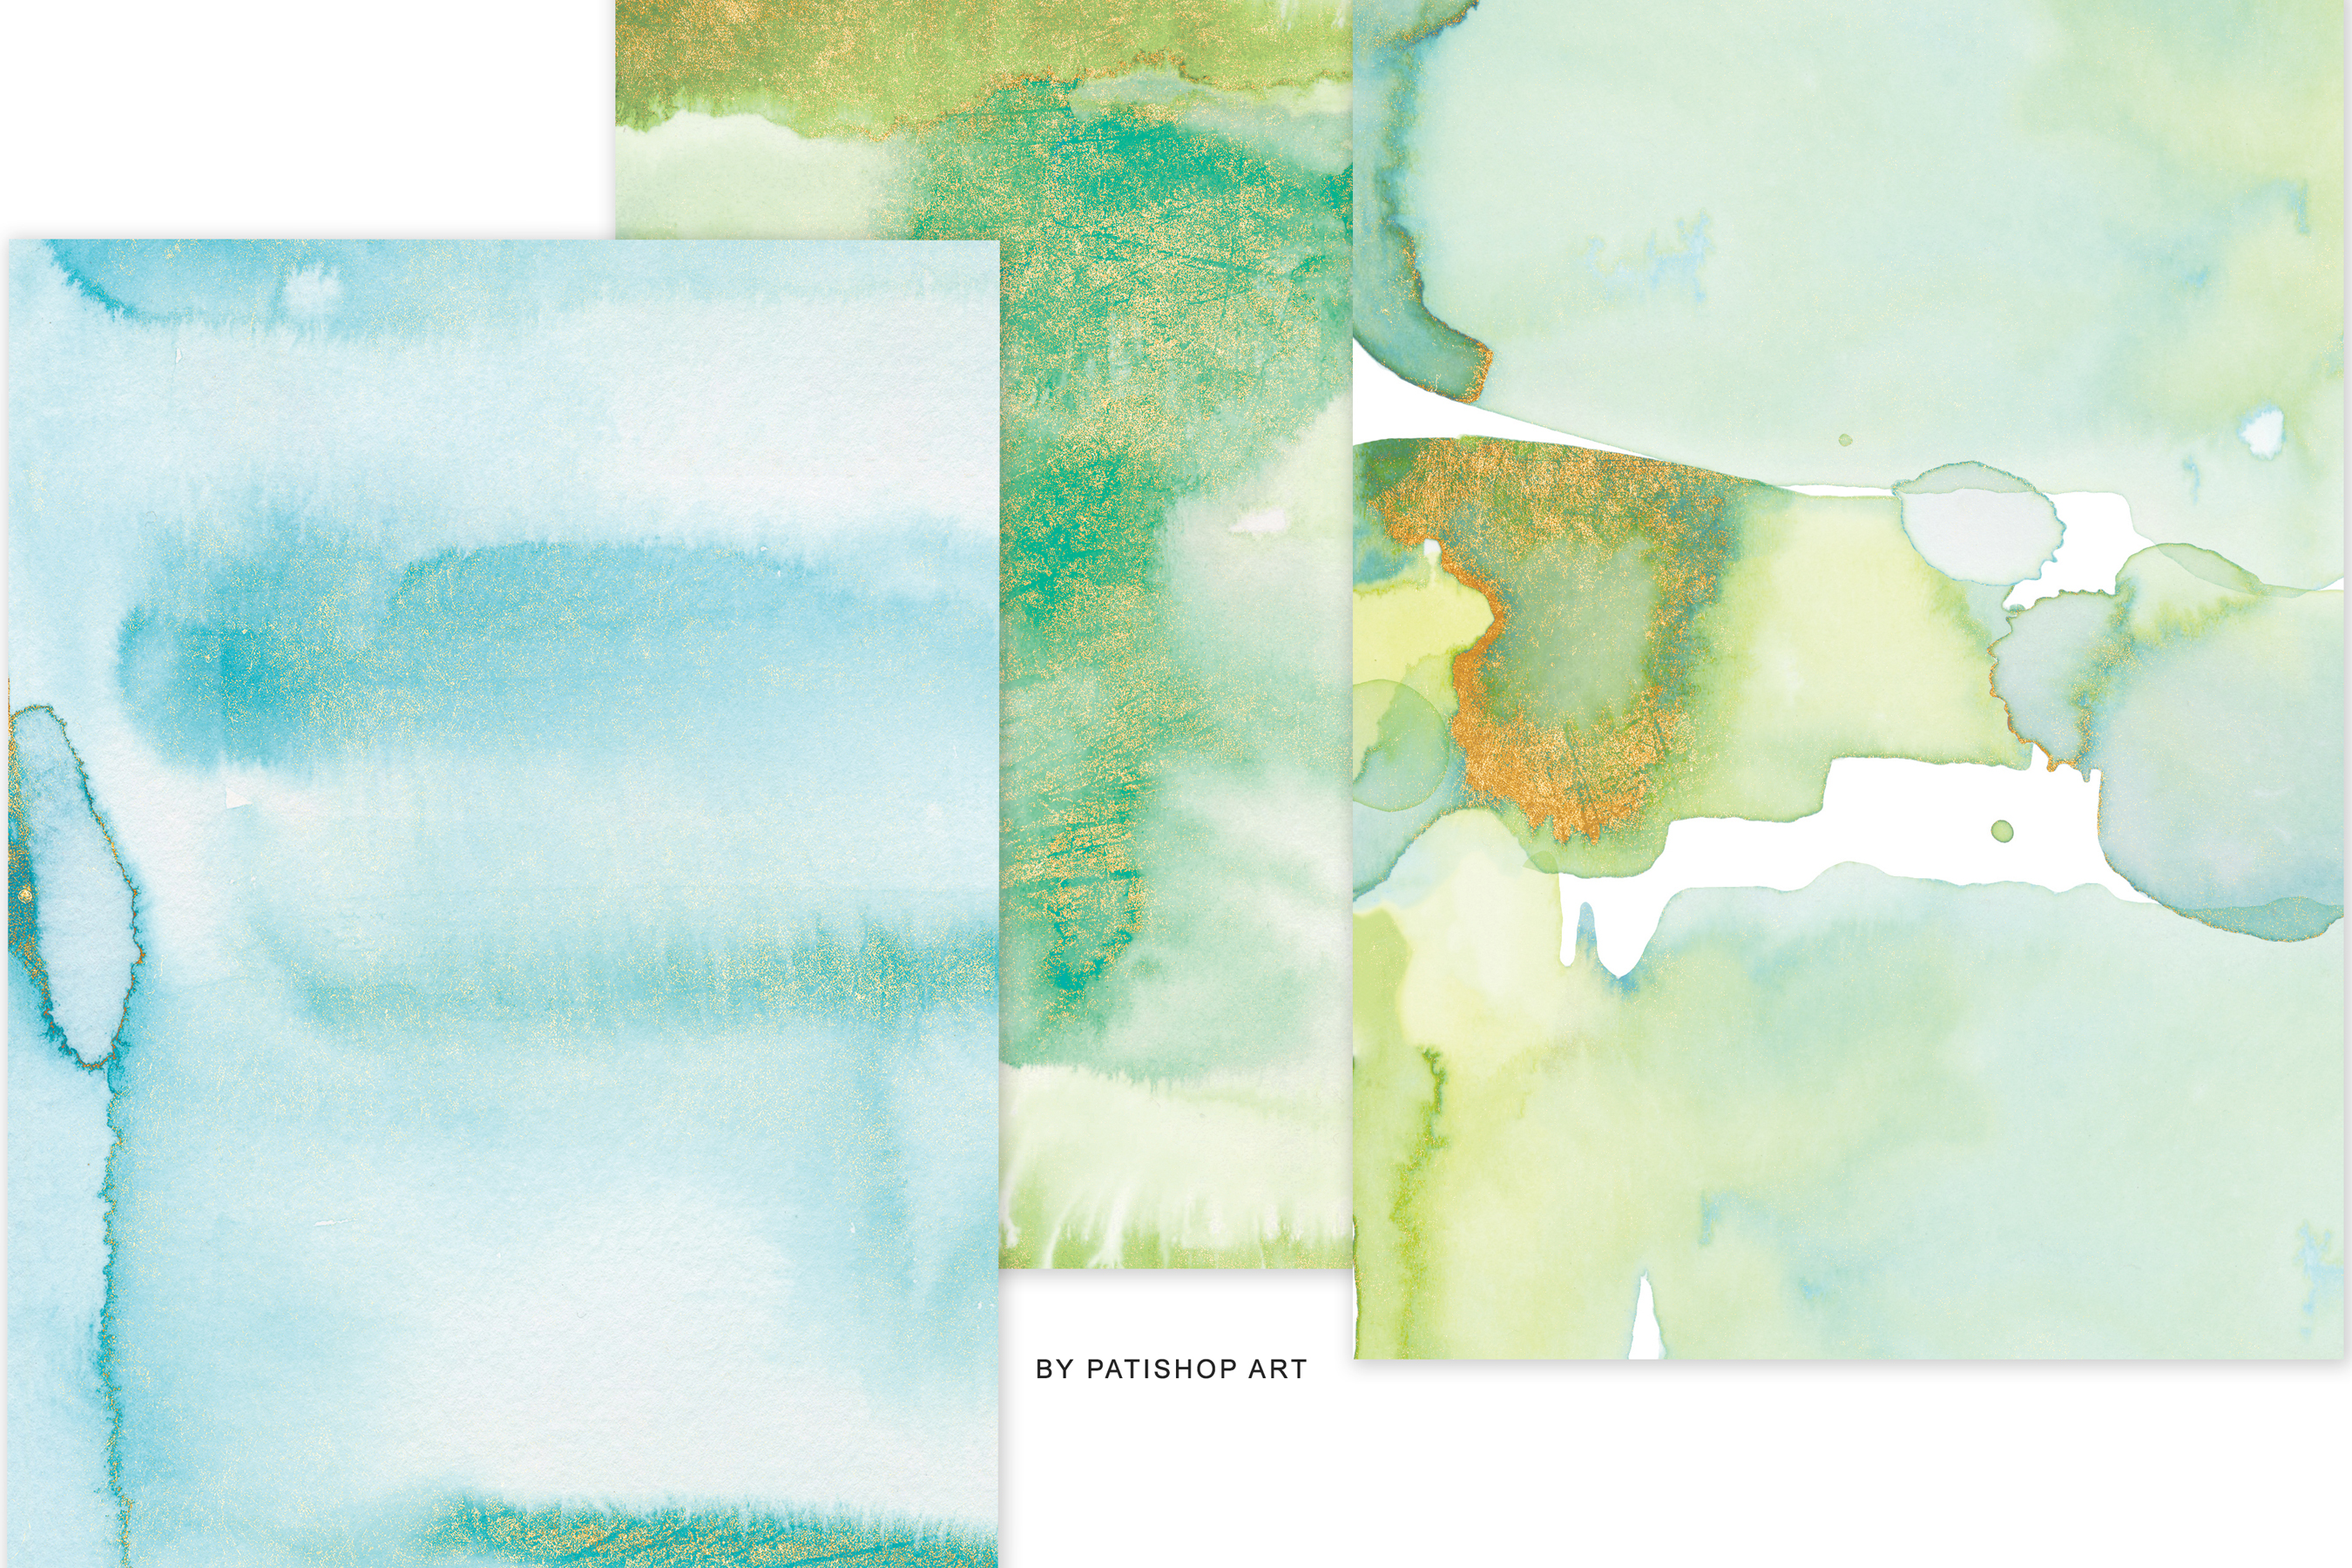 Watercolor Glittered Green & Turquoise Background 5x7 example image 6